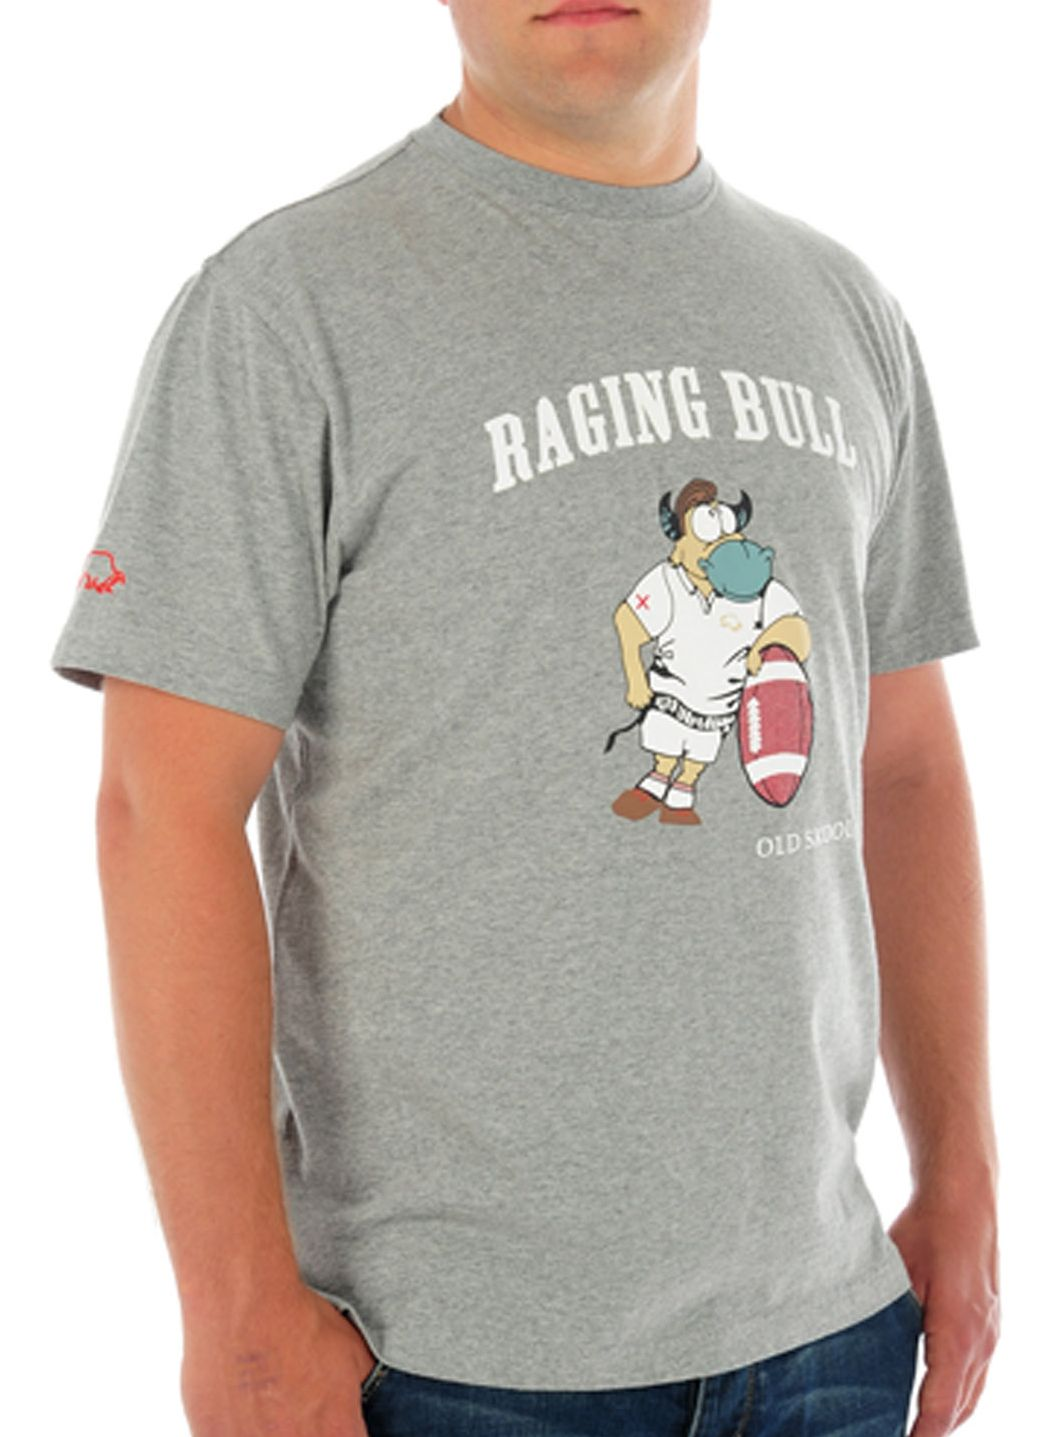 Raging Bull Old skool bull T-shirt, Grey 155396994 product image